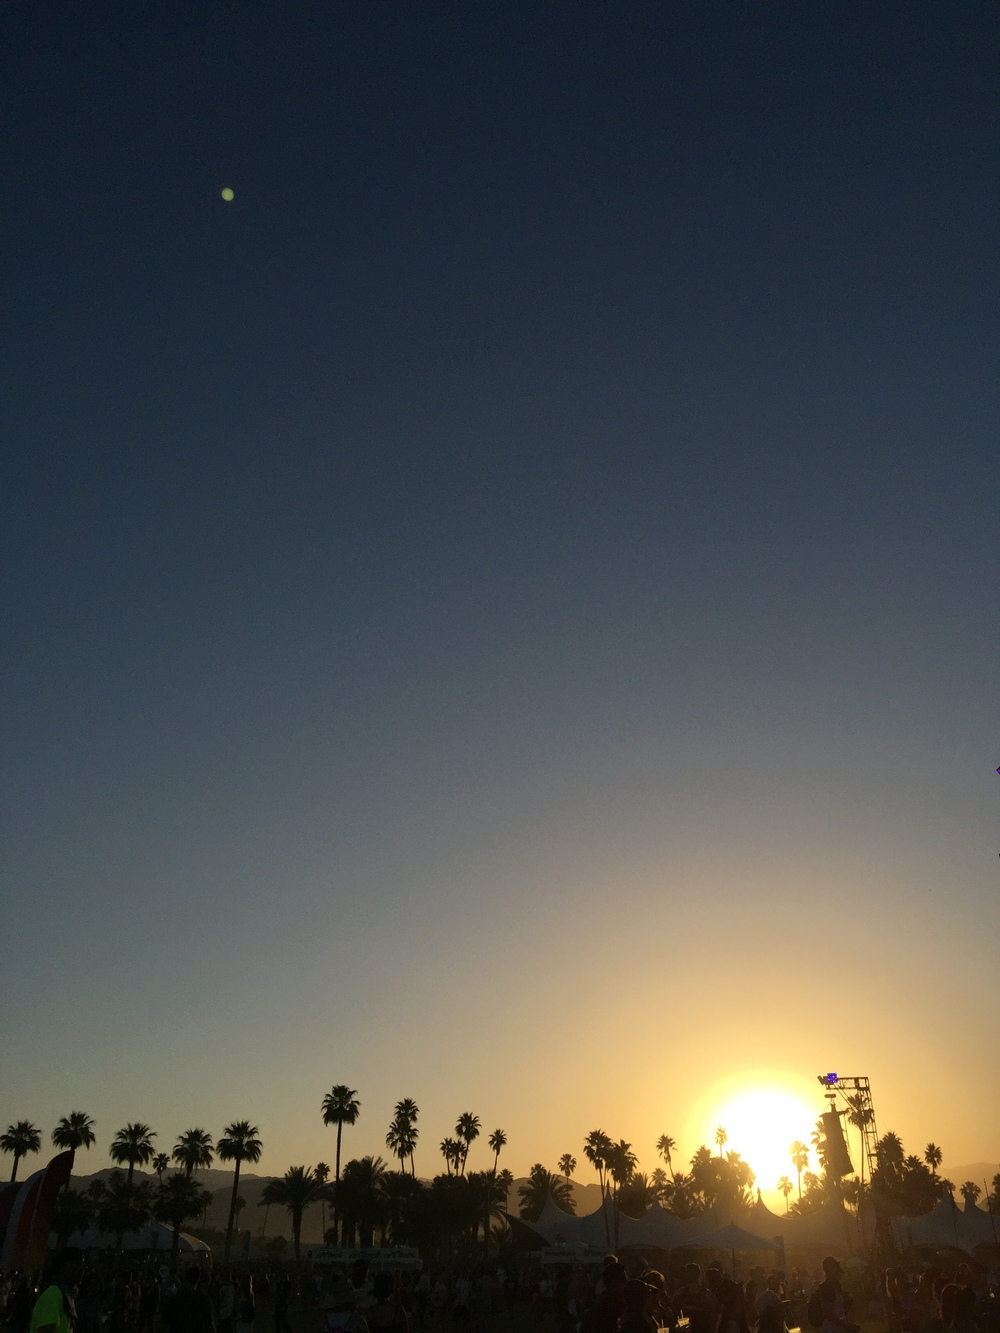 giant sunsets and palm silhouettes